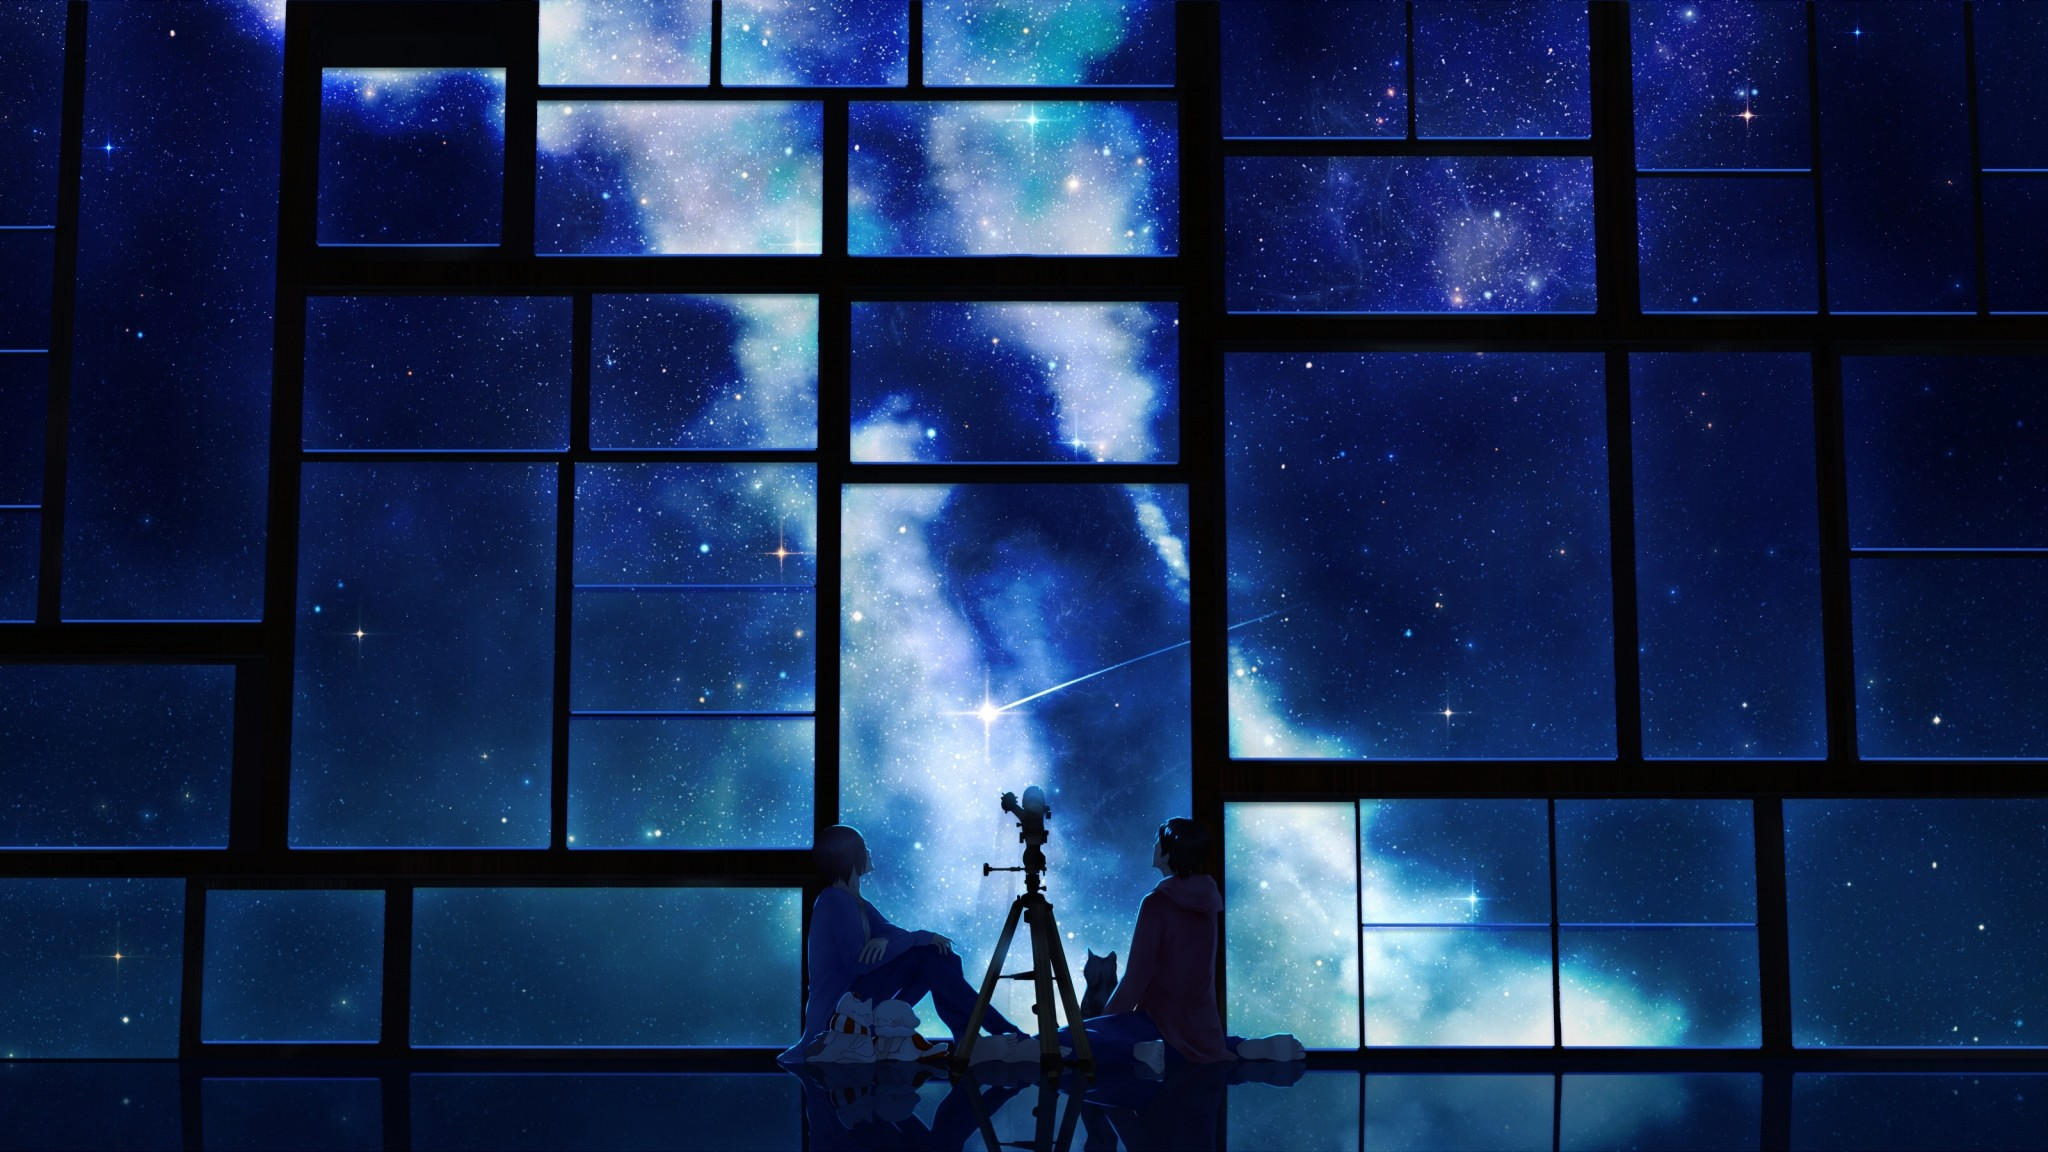 2048x1152 Preview wallpaper tamagosho, sky, stars, telescope, night, window